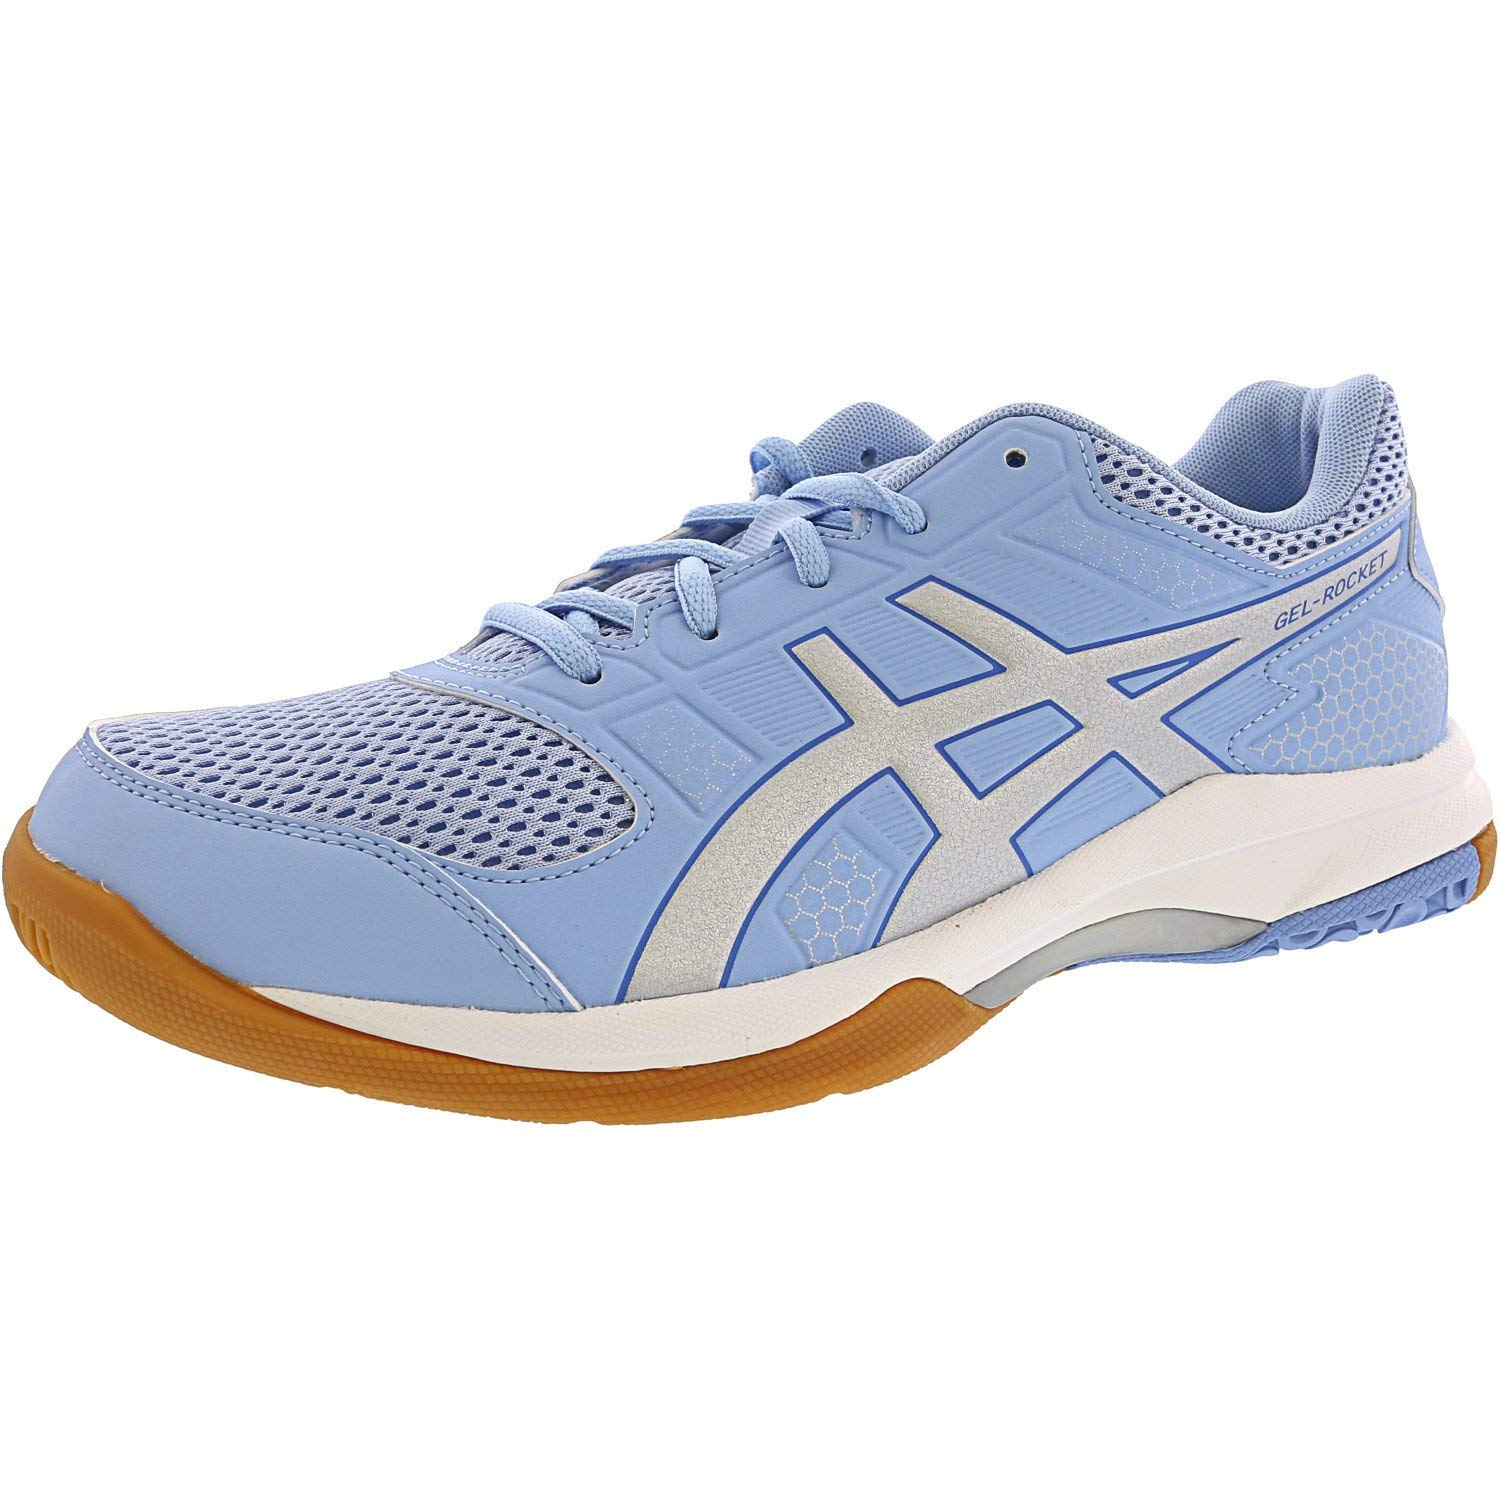 ASICS Womens Gel-Rocket 8 Volleyball Shoe, Airy Blue/Silver/White, 9 Medium US by ASICS